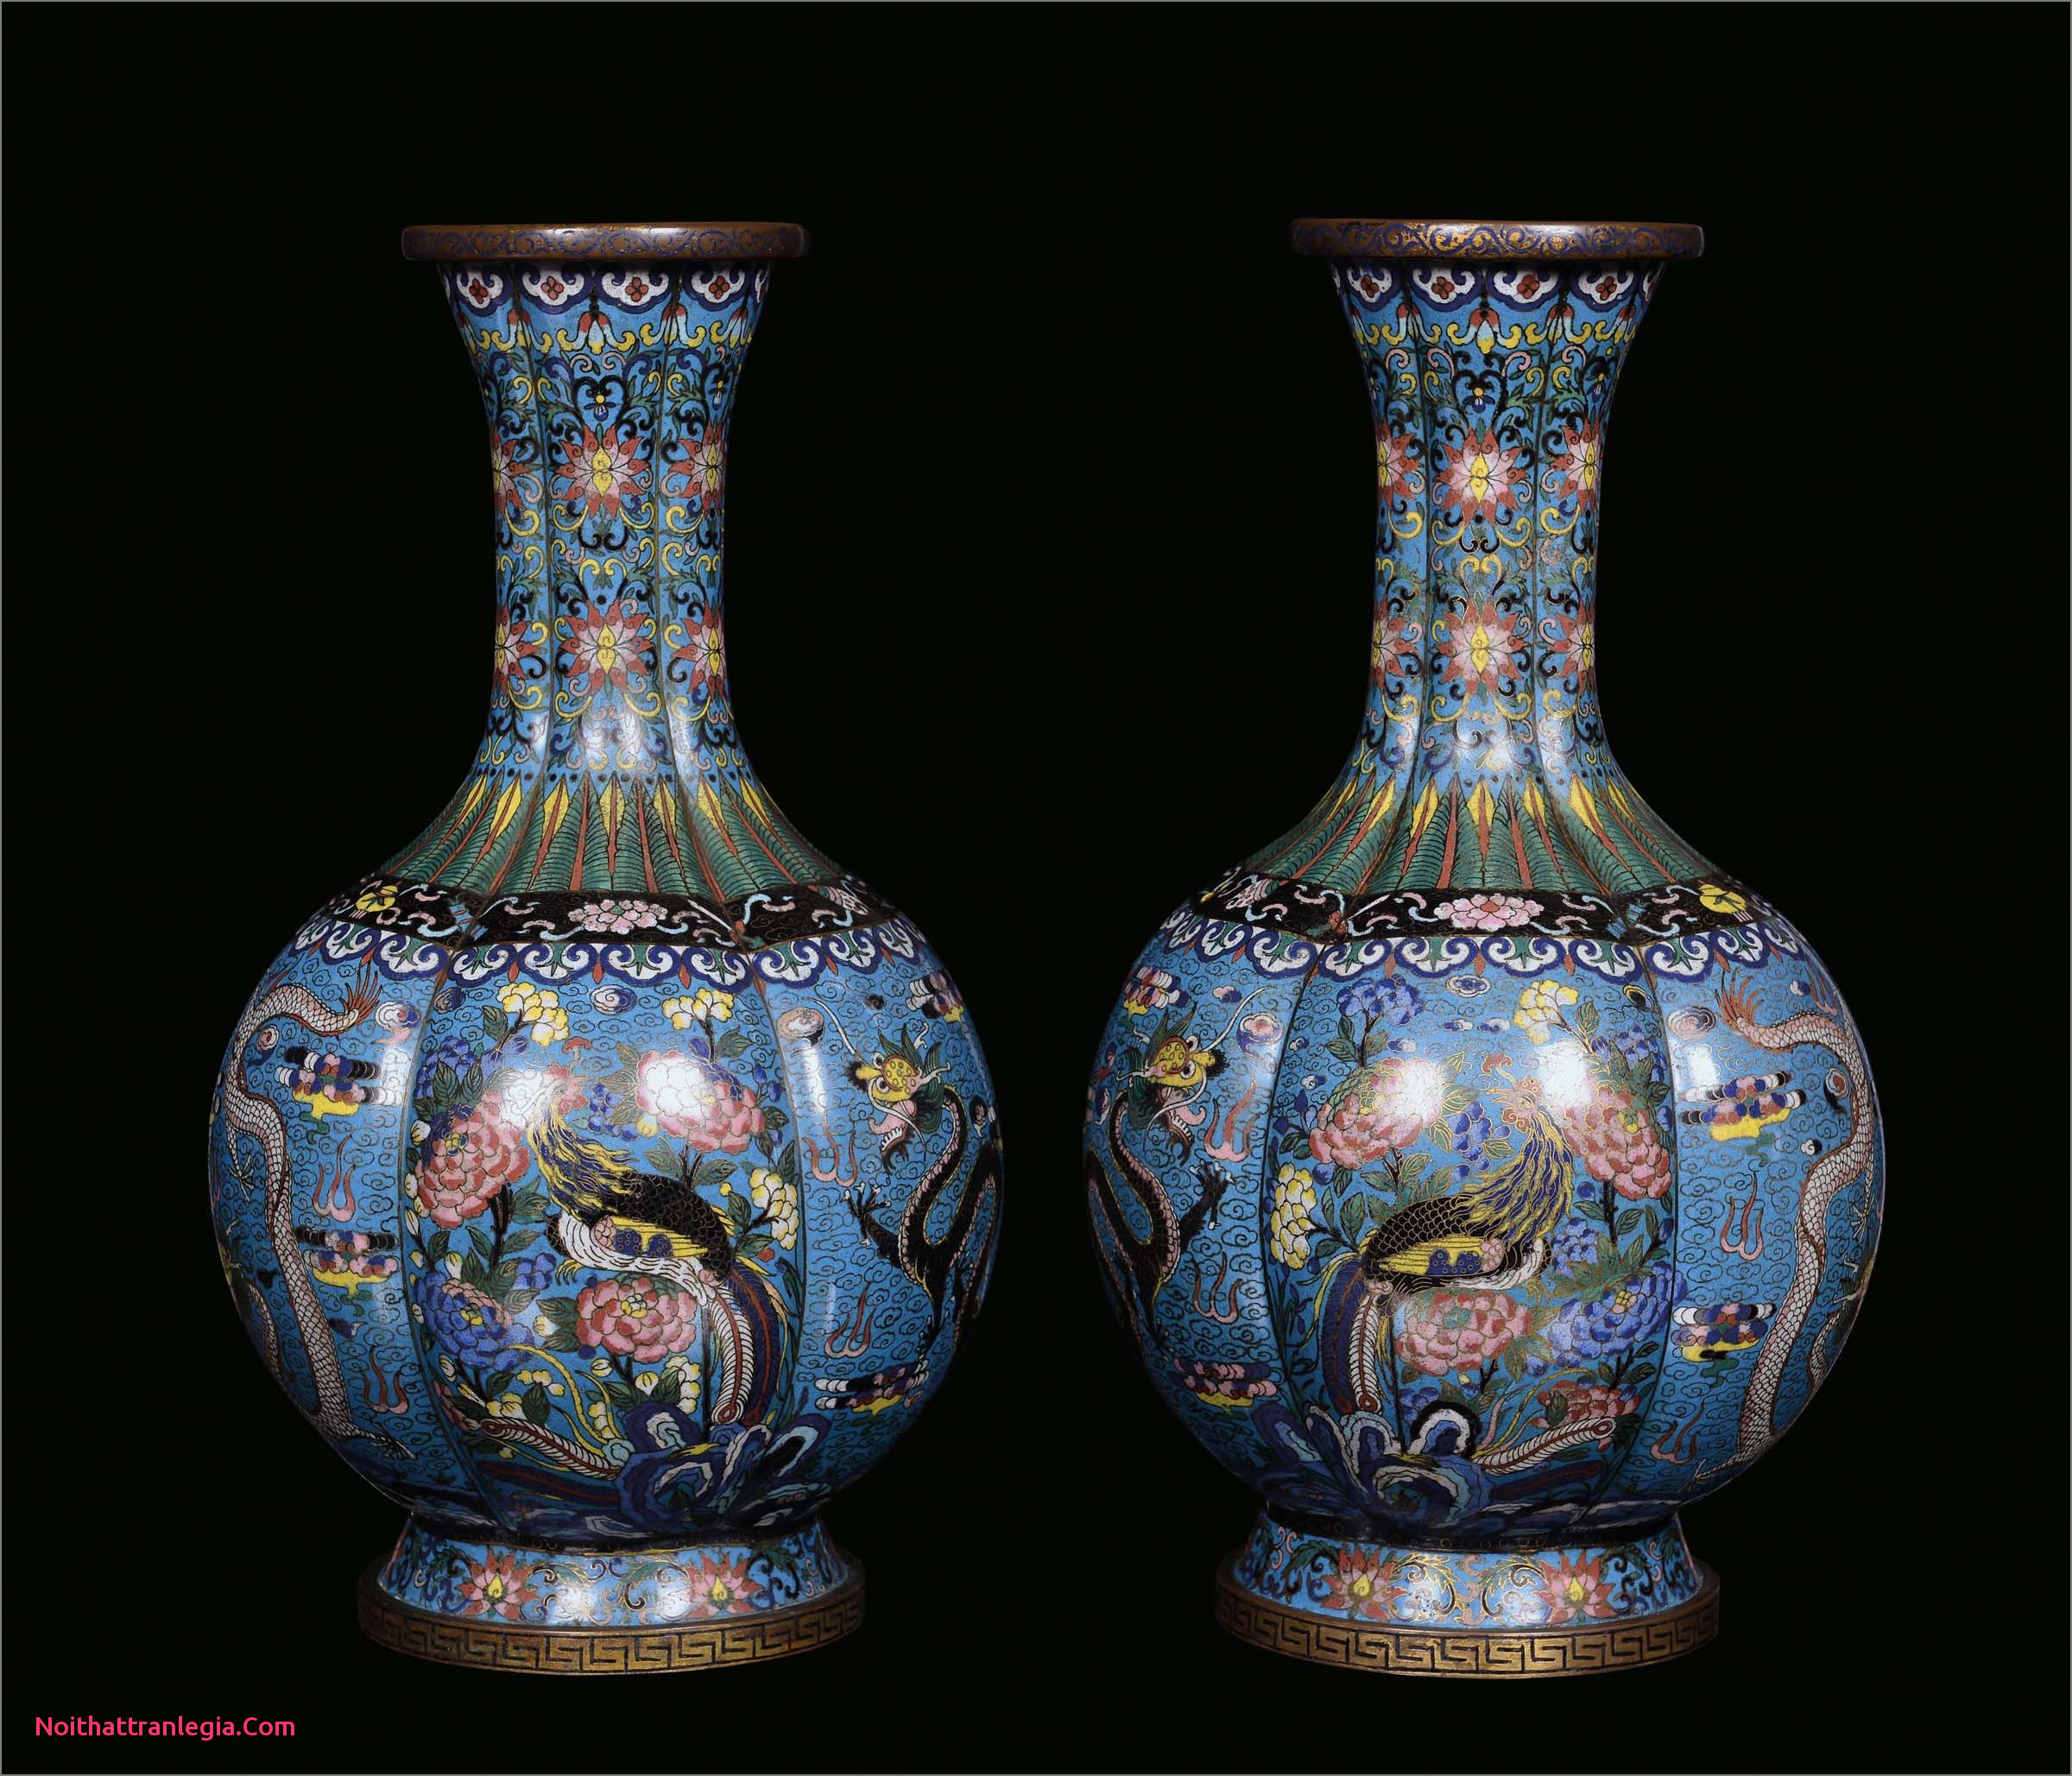 blue white ginger jar vases of 20 chinese antique vase noithattranlegia vases design inside a pair of cloisonna vases with naturalistic decoration china qing dynasty guangxu period